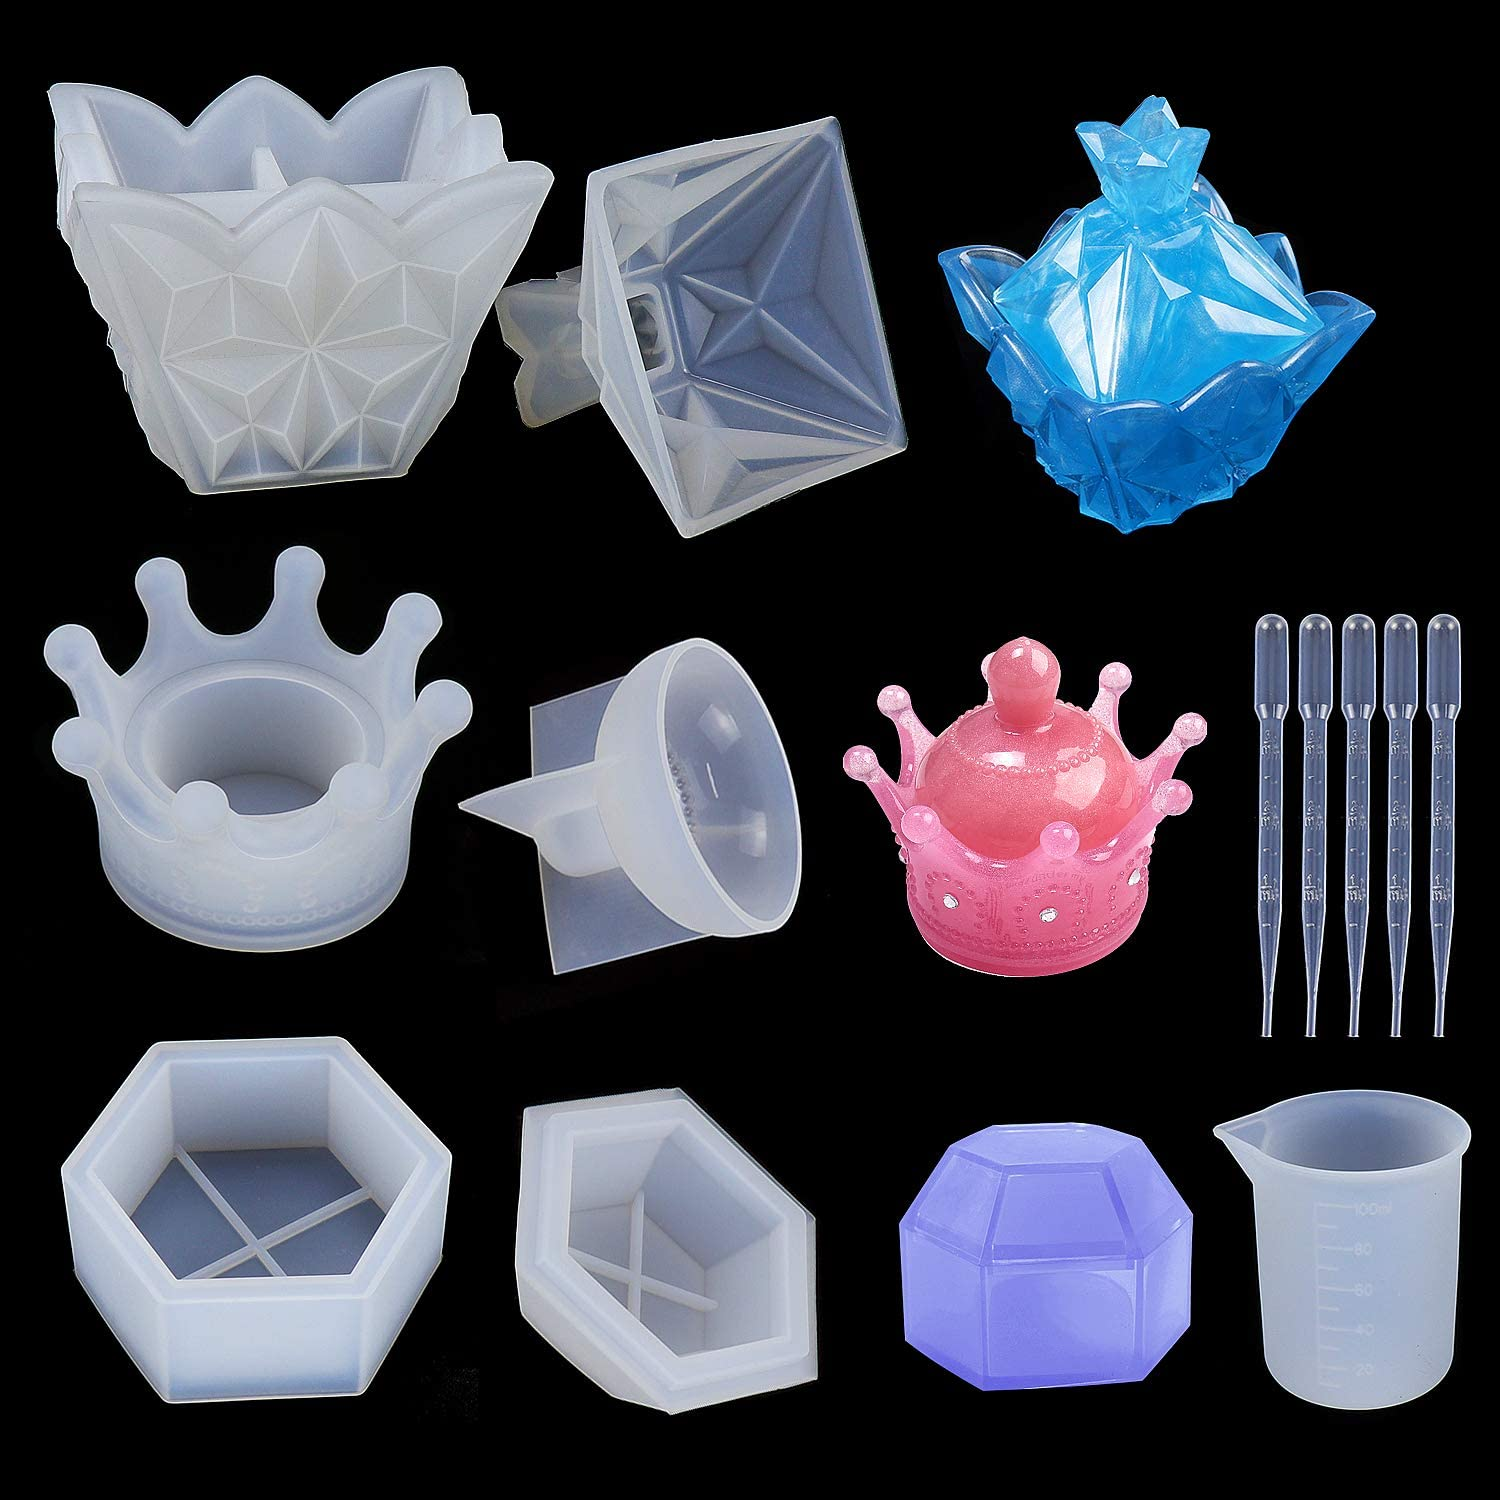 Dreamtop Jewelry Box Silicone Outstanding Animer and price revision Molds DIY Resin